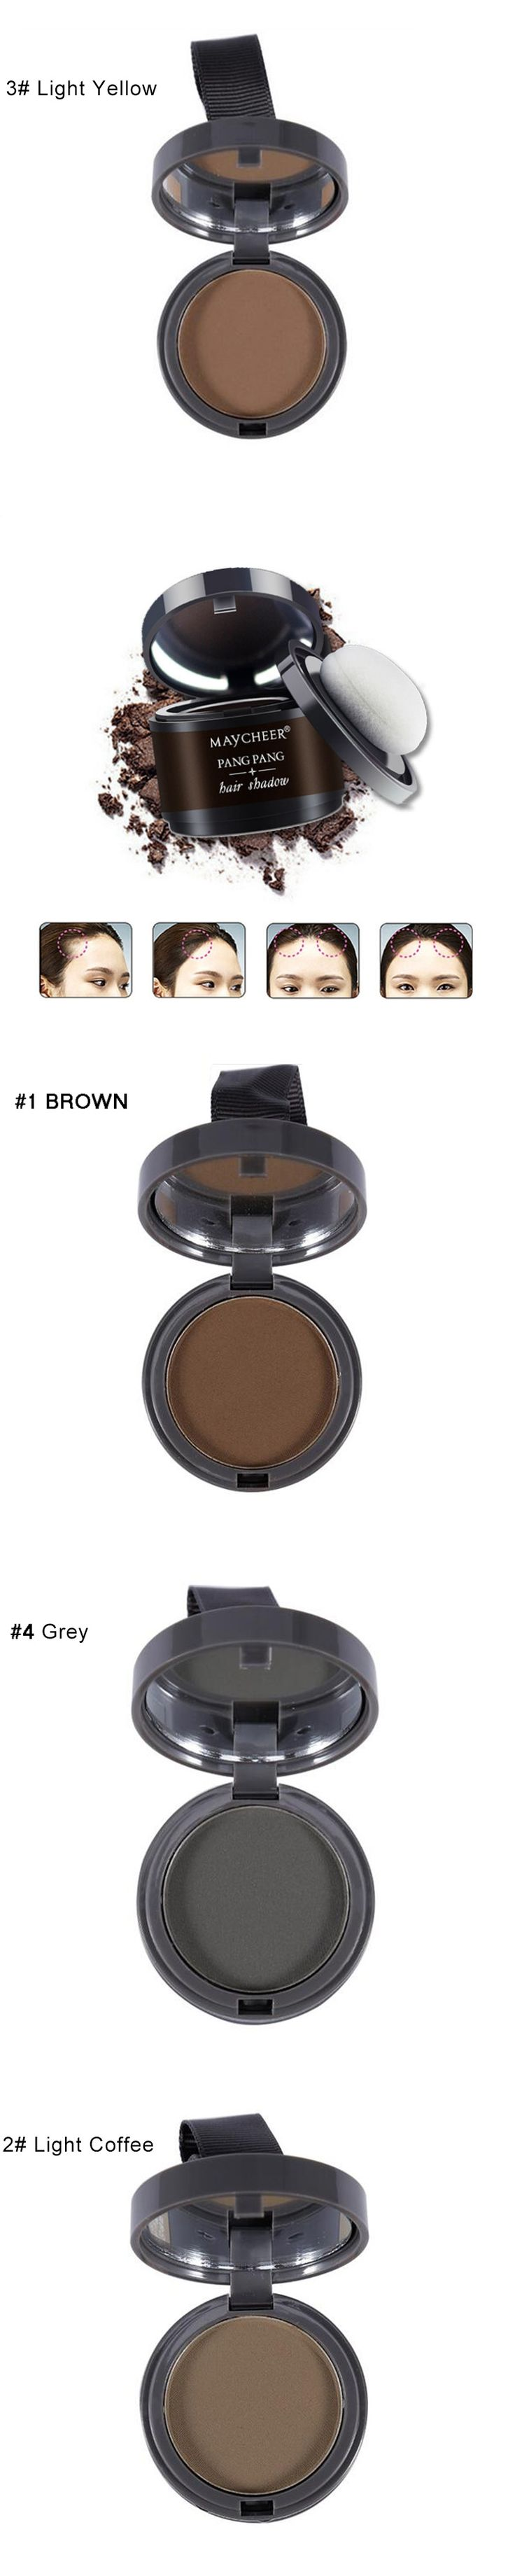 New 4 Color Hair Fluffy Powder Instantly Black Root Cover Up Natural Instant Hair Line Shadow Powder Hair Concealer Coverag